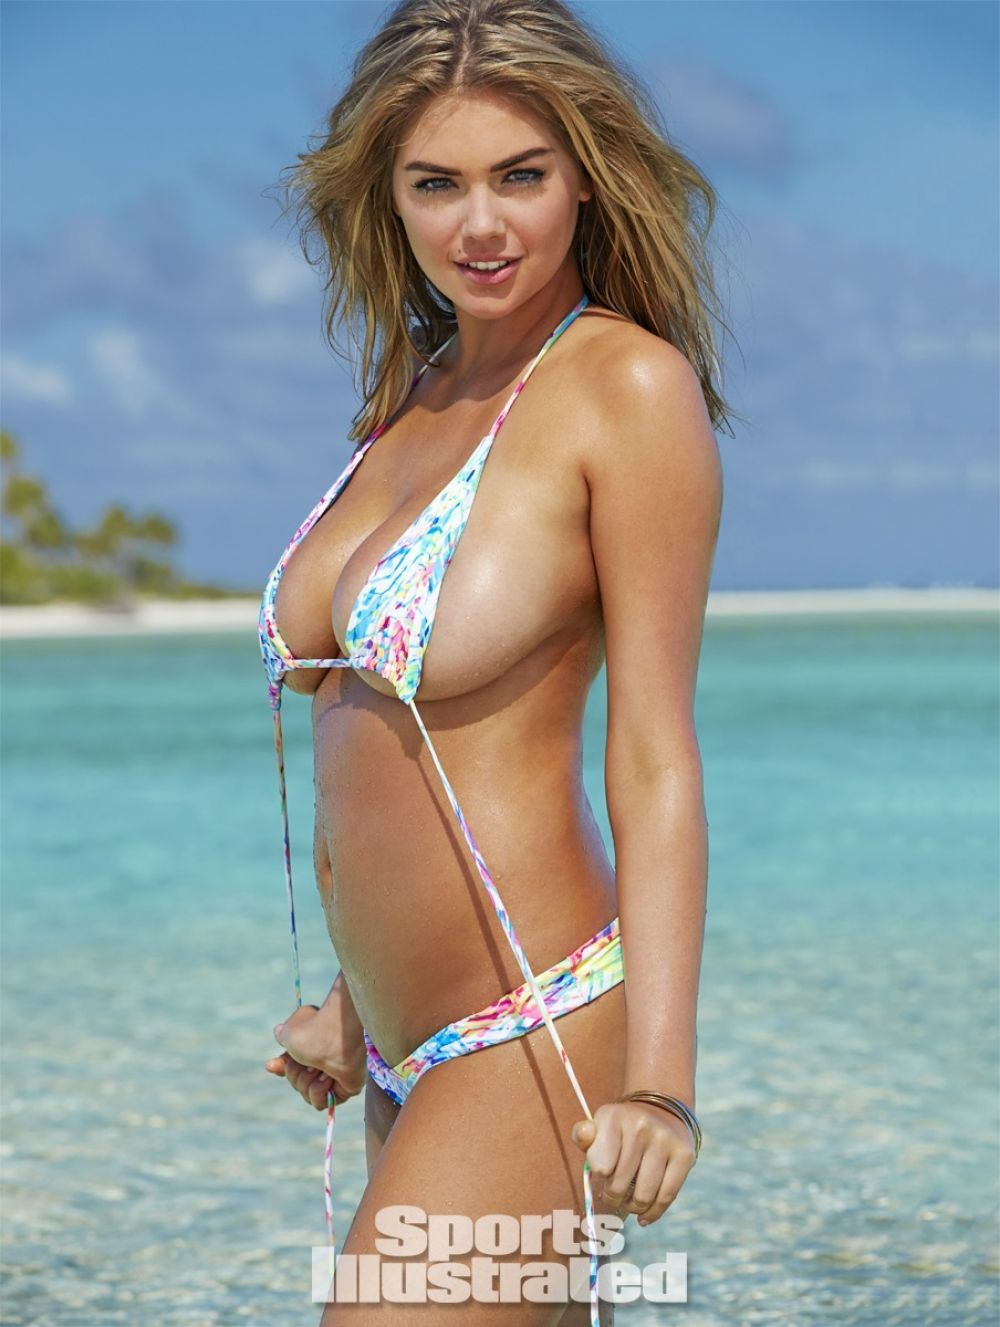 Sports Illustrated Swimsuit Kate Upton New Calendar